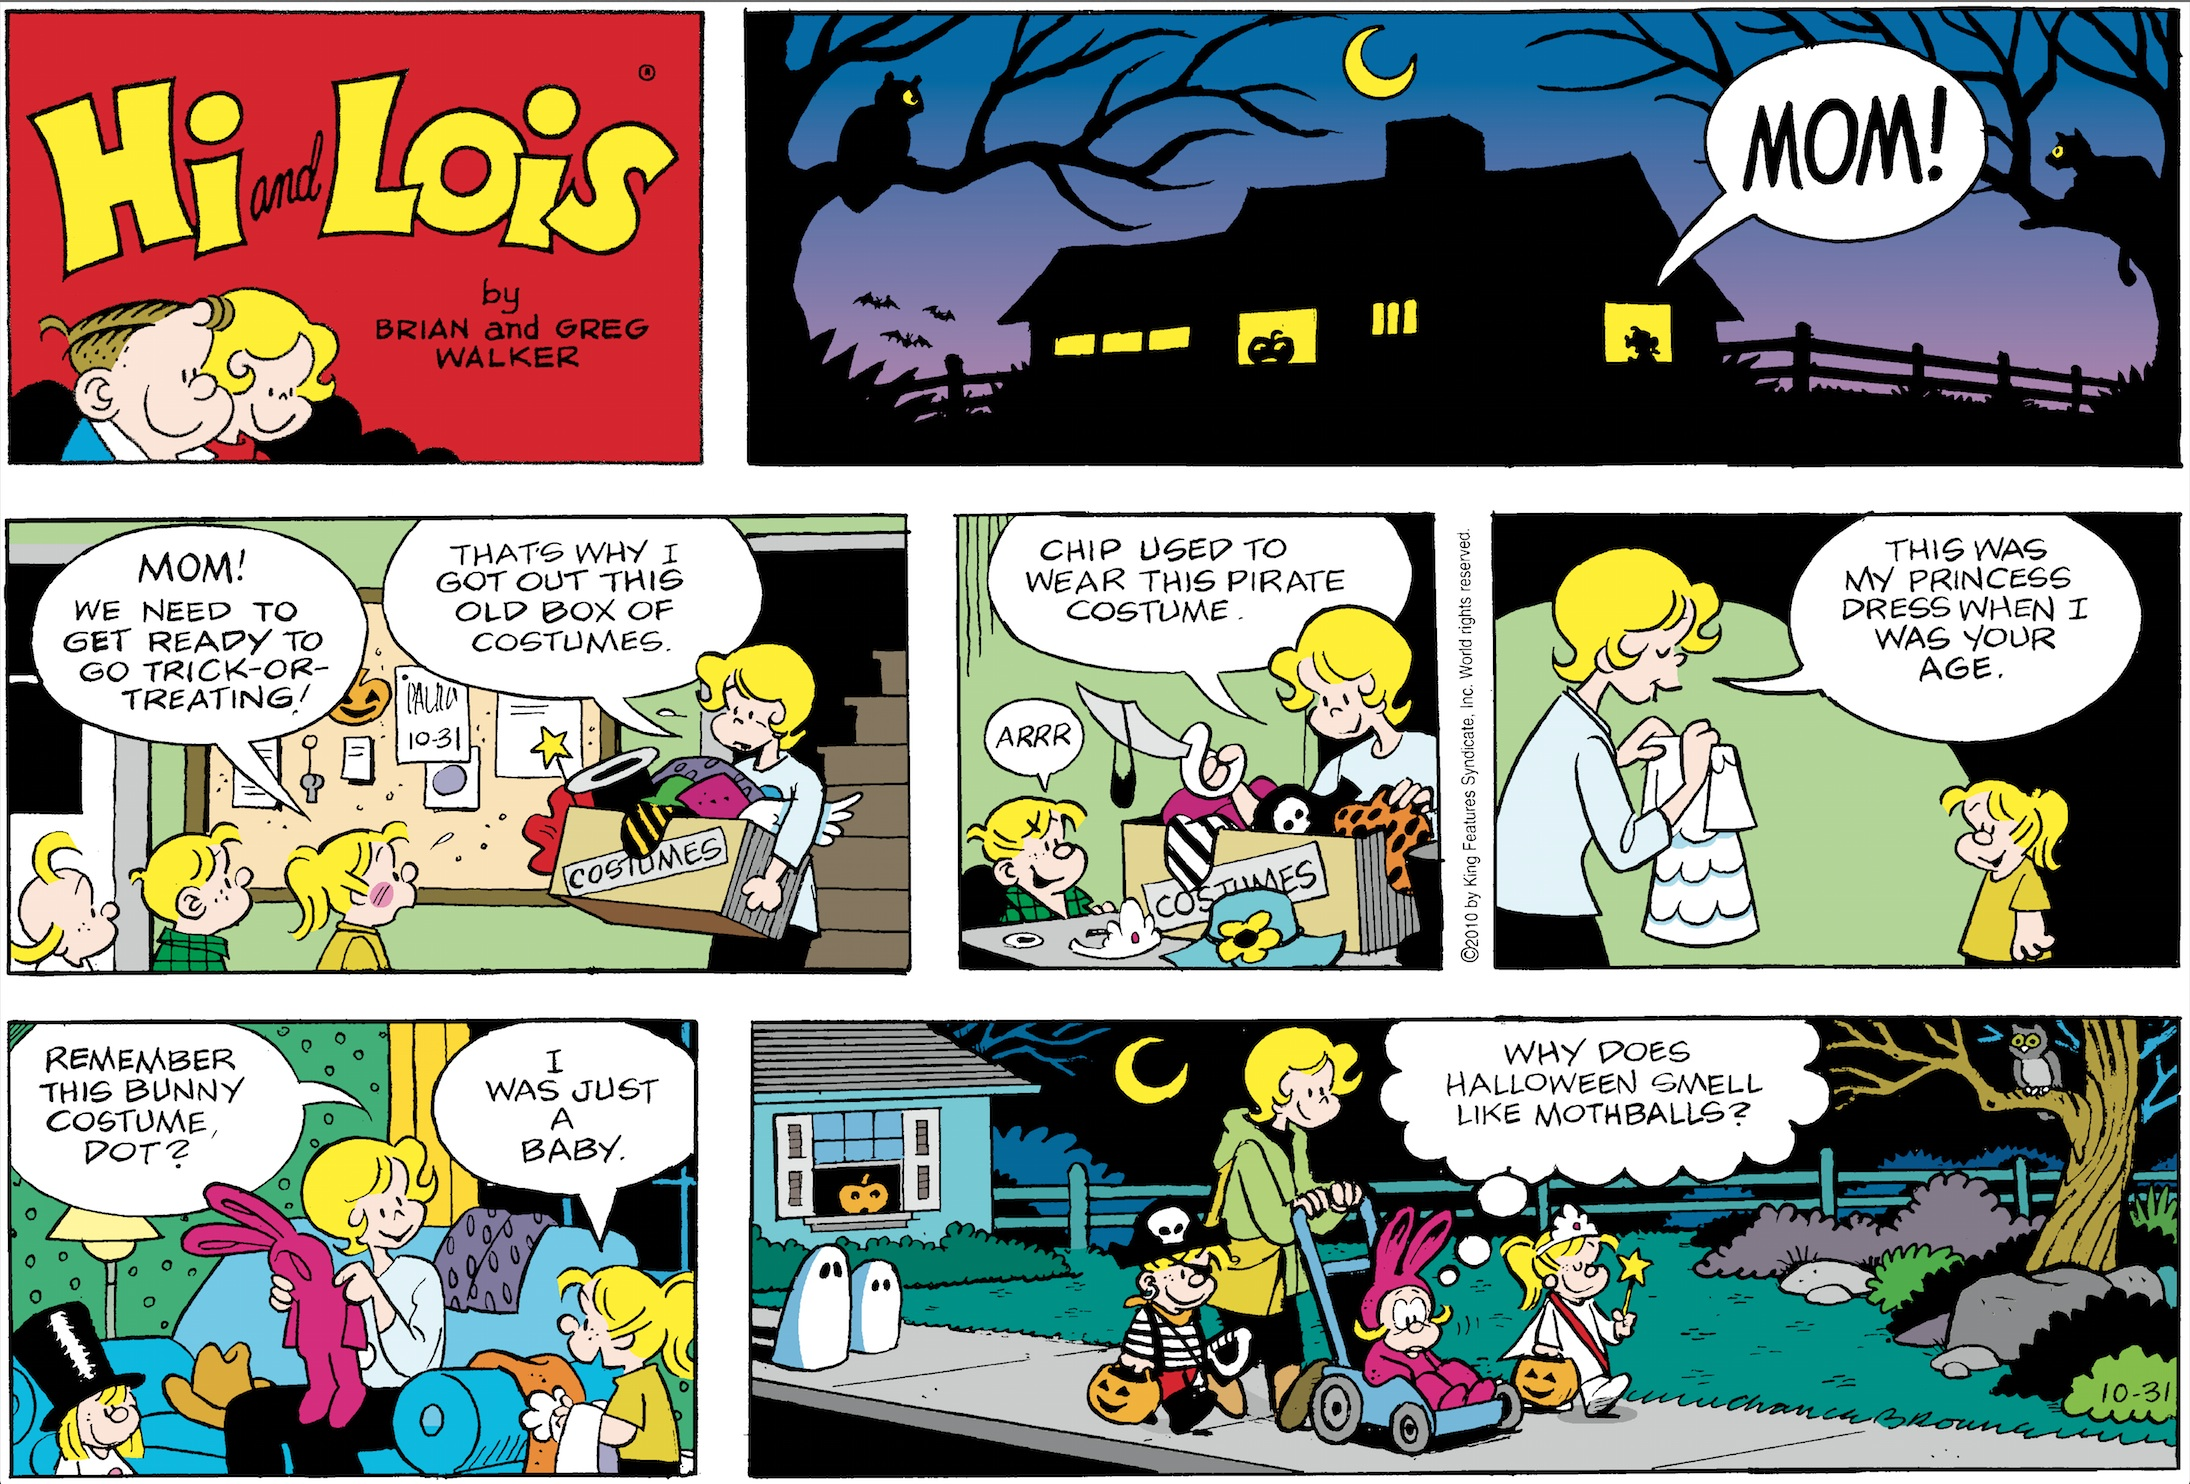 Hi and Lois Sunday page, October 31, 2010.